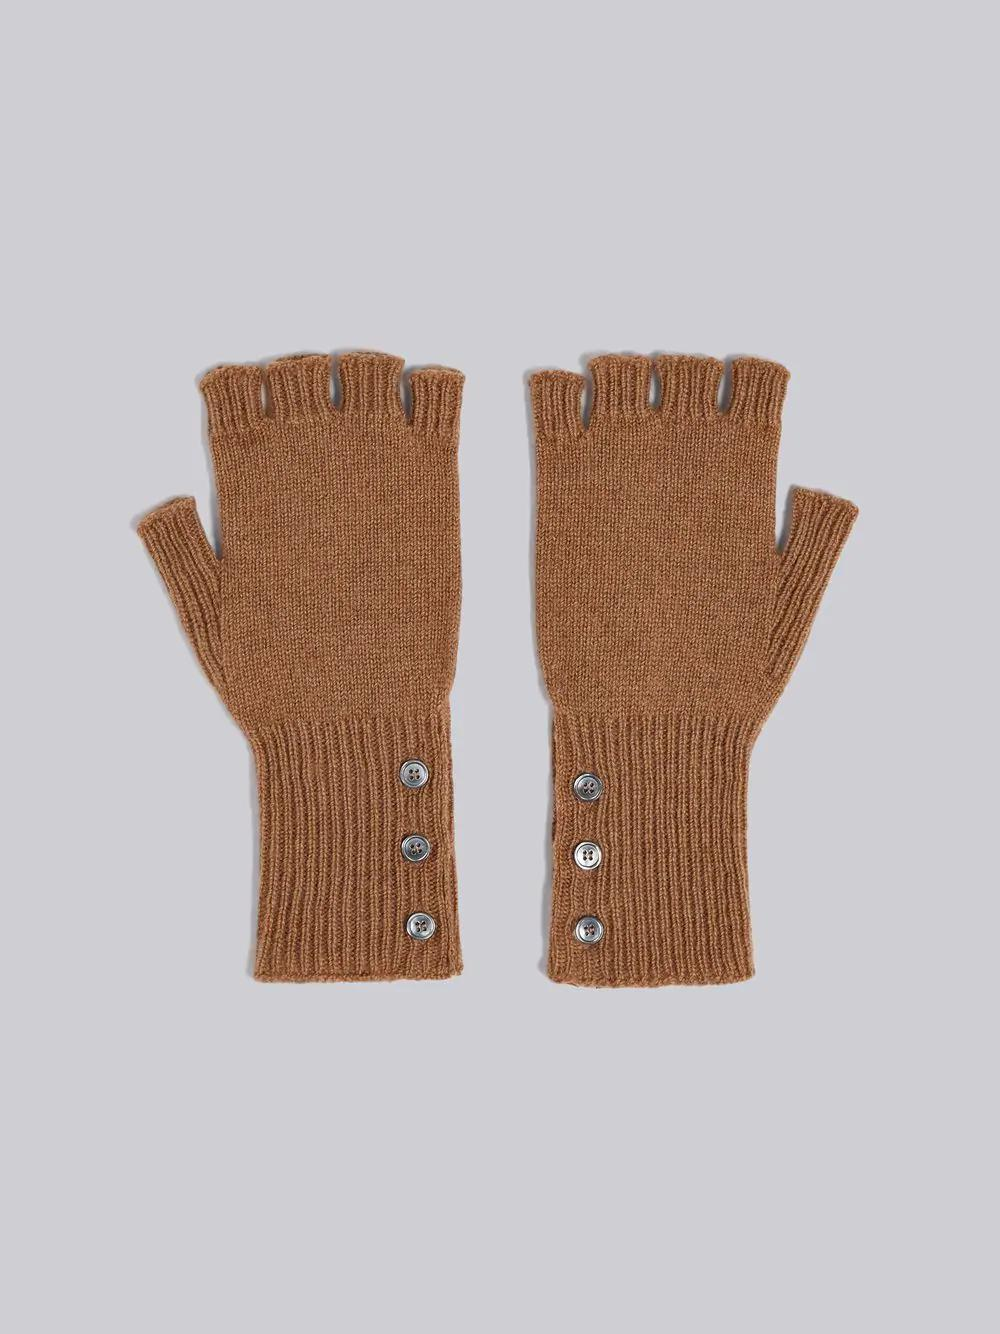 Thom Browne Fingerless Gloves In Camel Hair - Neutrals